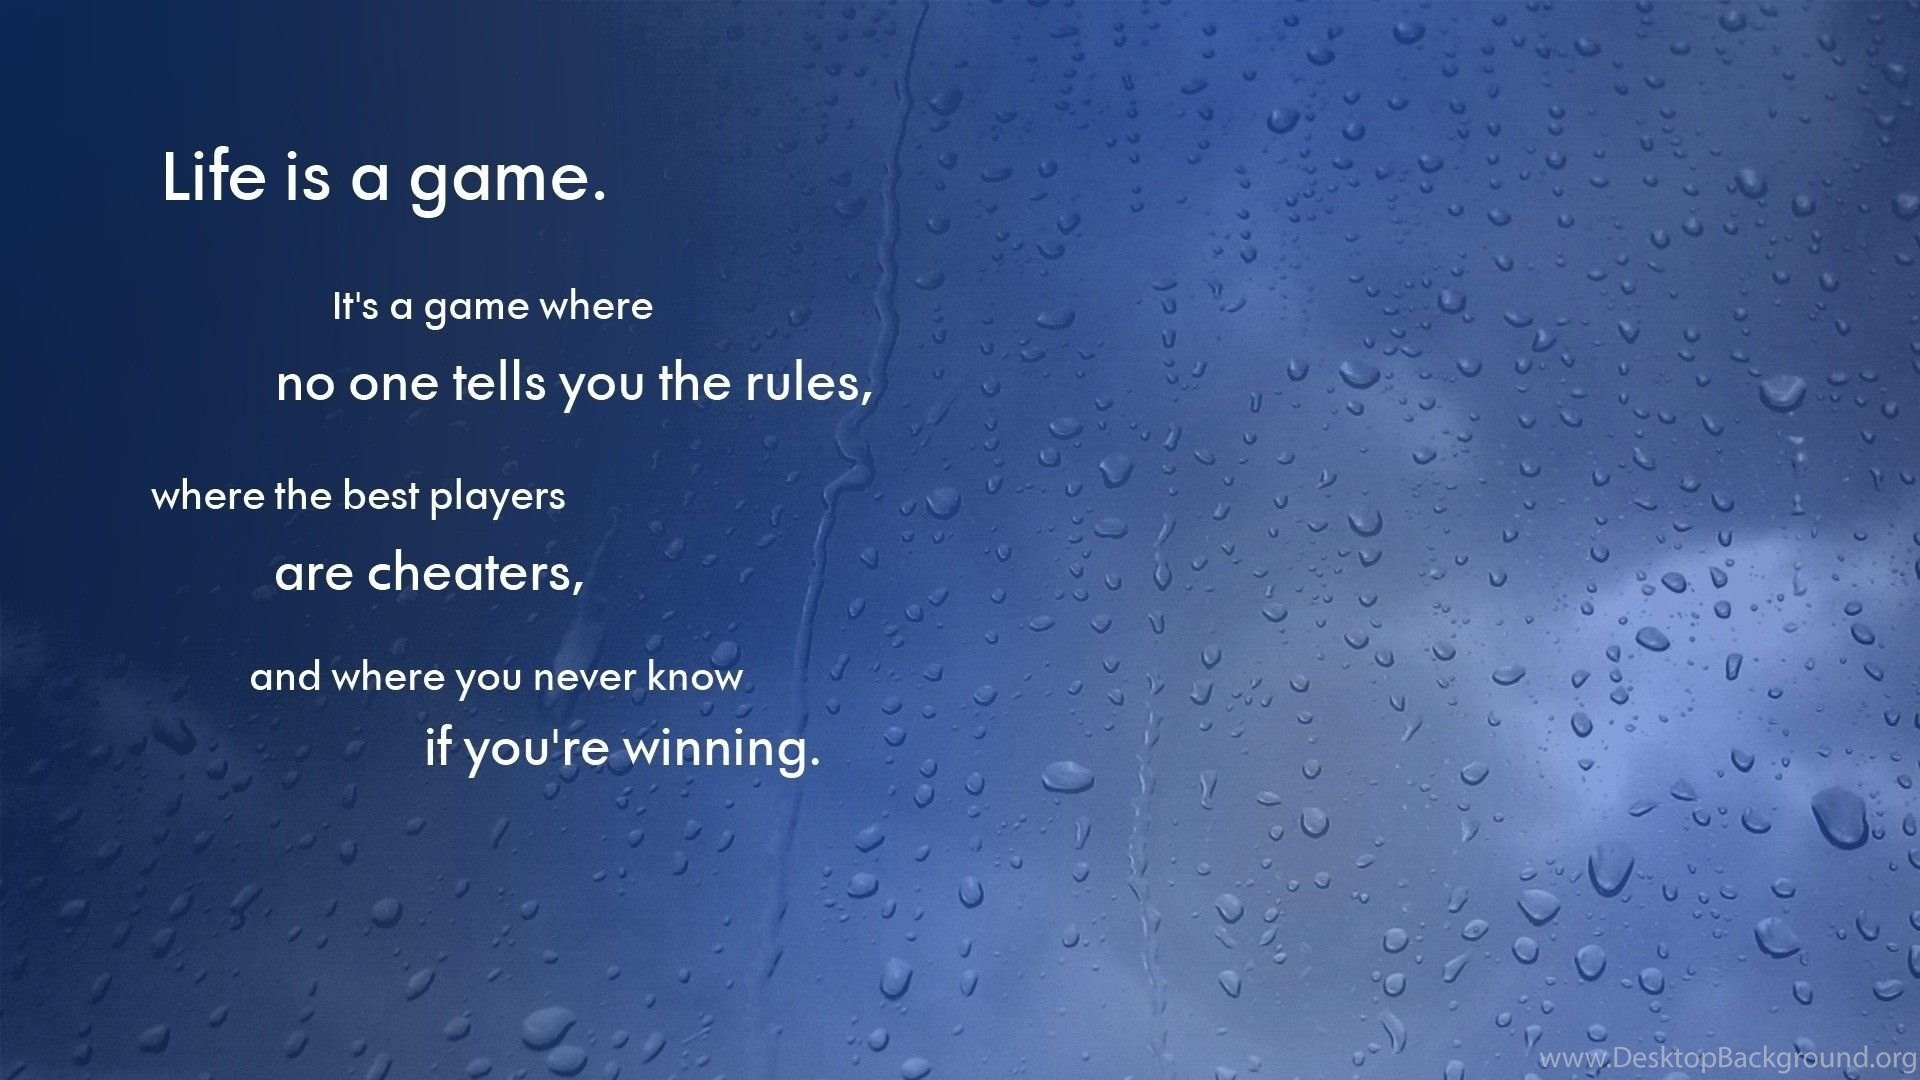 life game blue rain water drops wallpapers desktop background